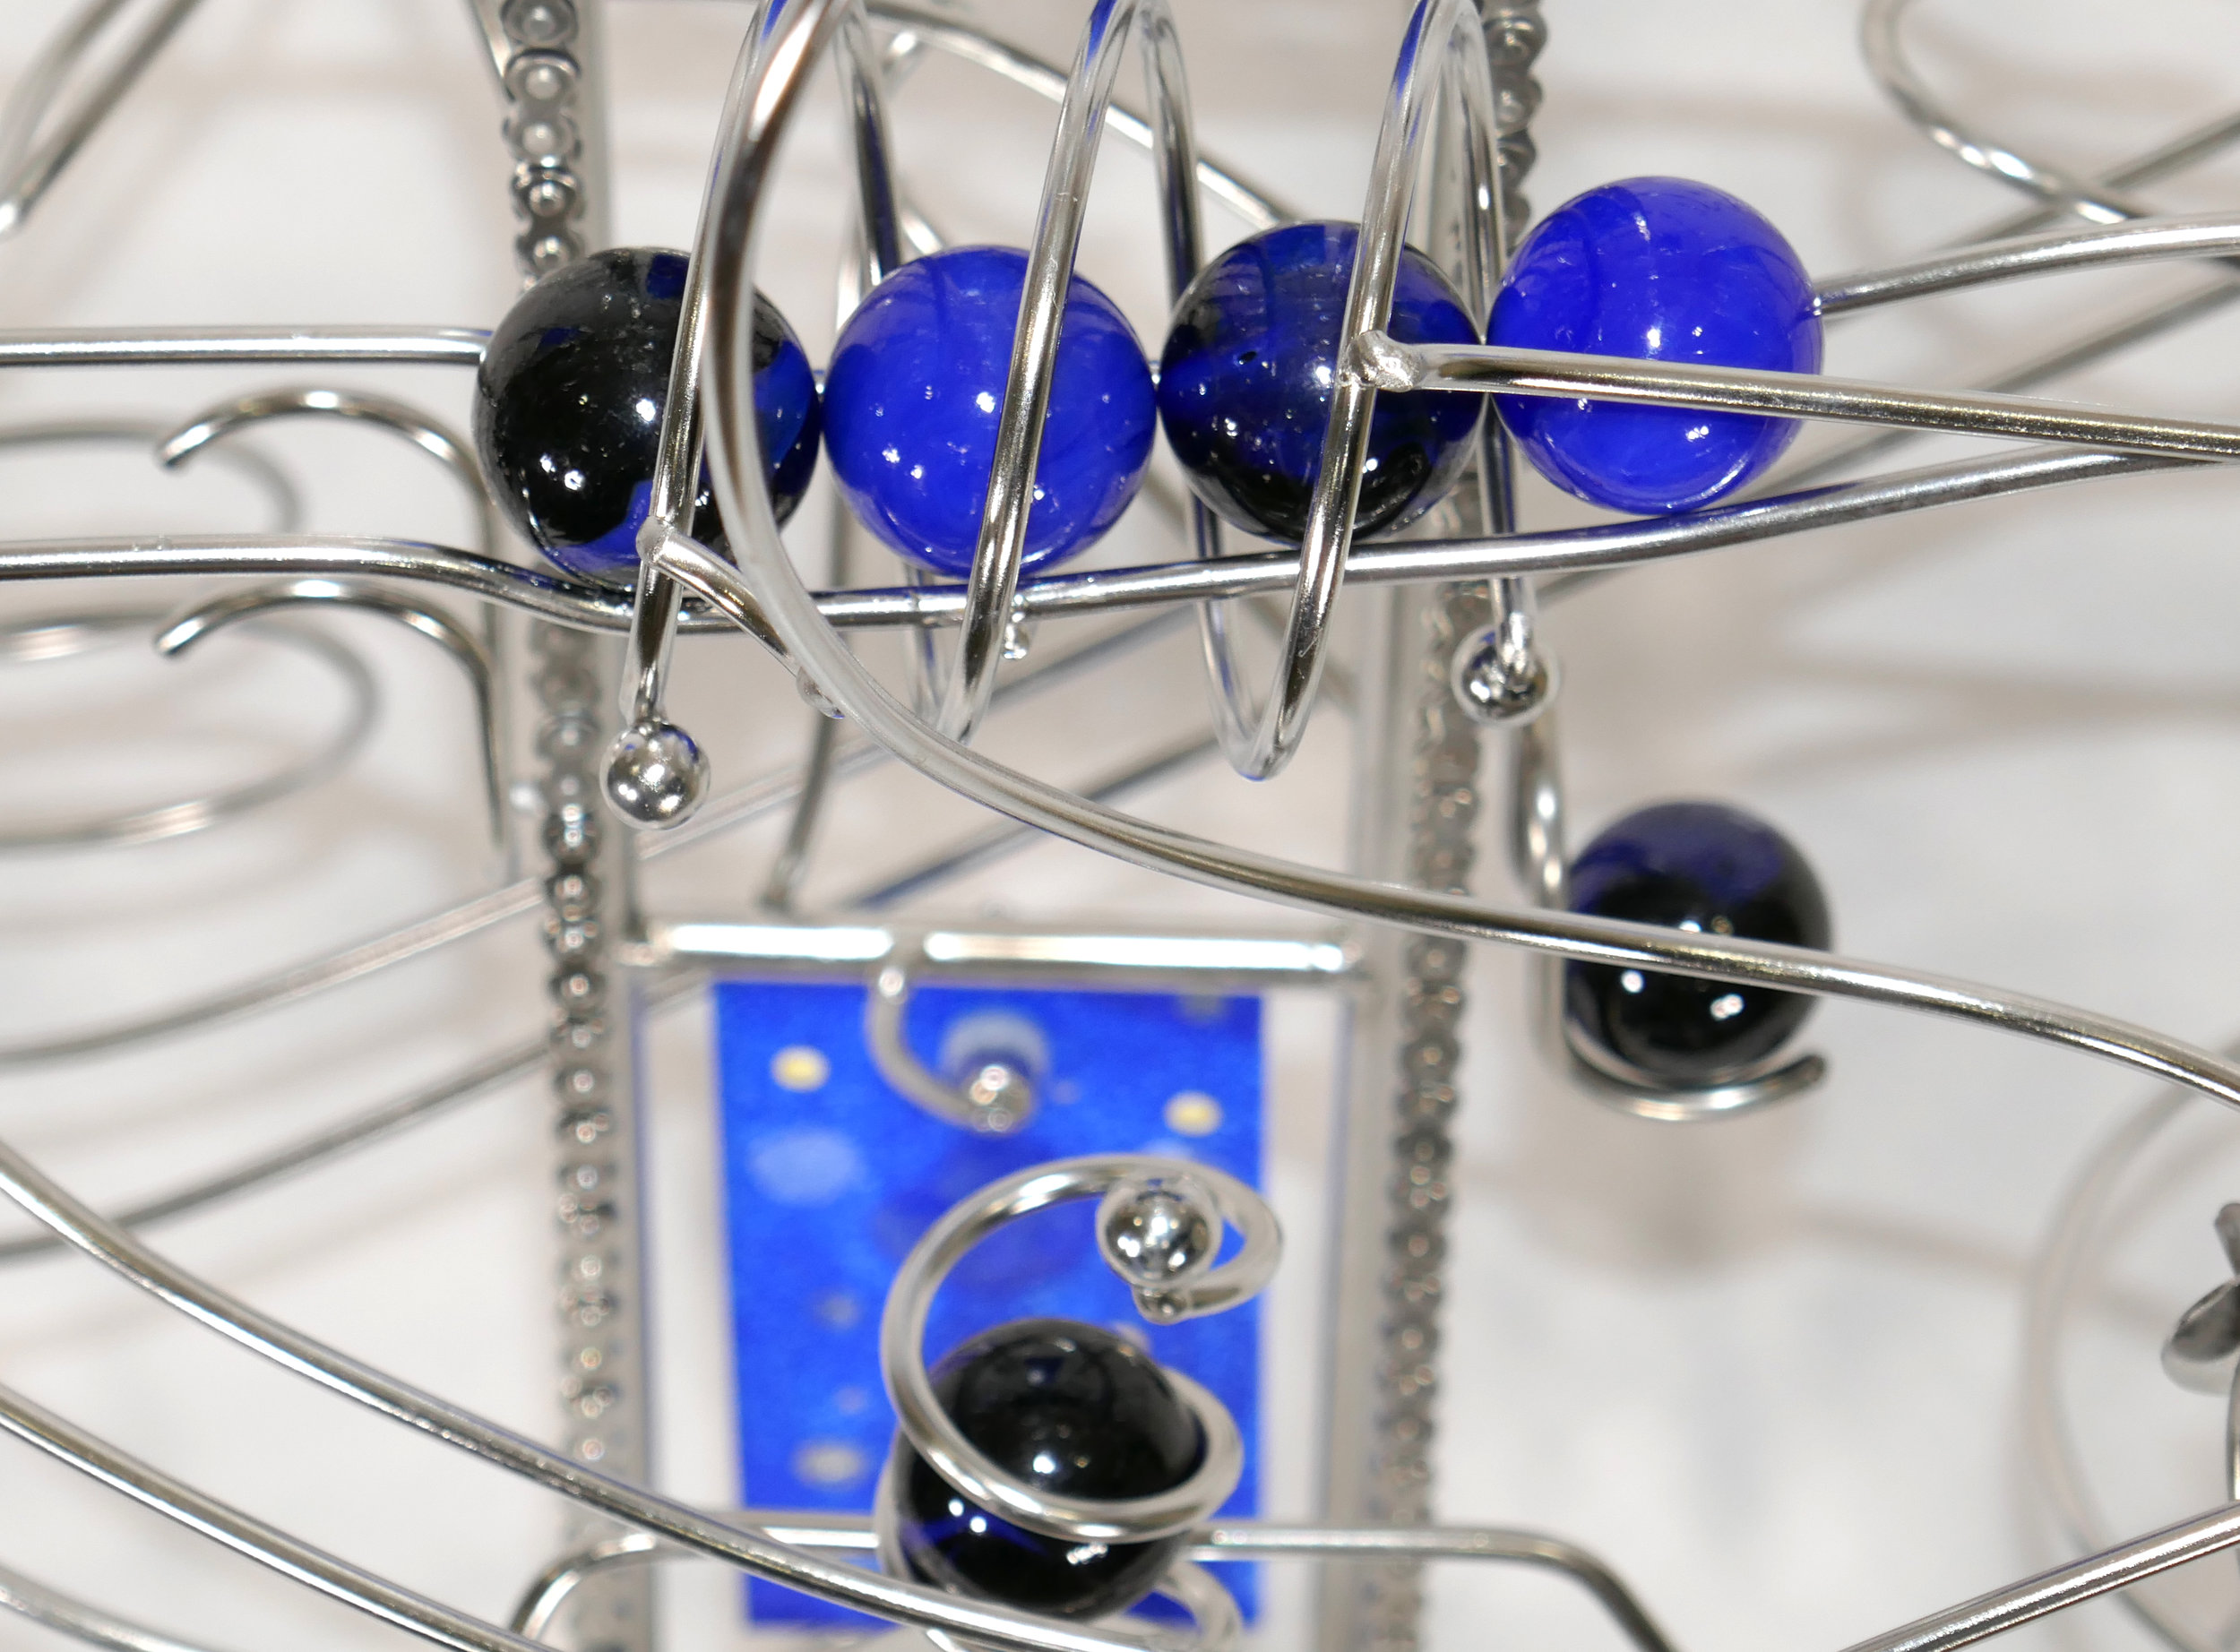 Rolling ball marble machine - close up of energy transfer kinetic element